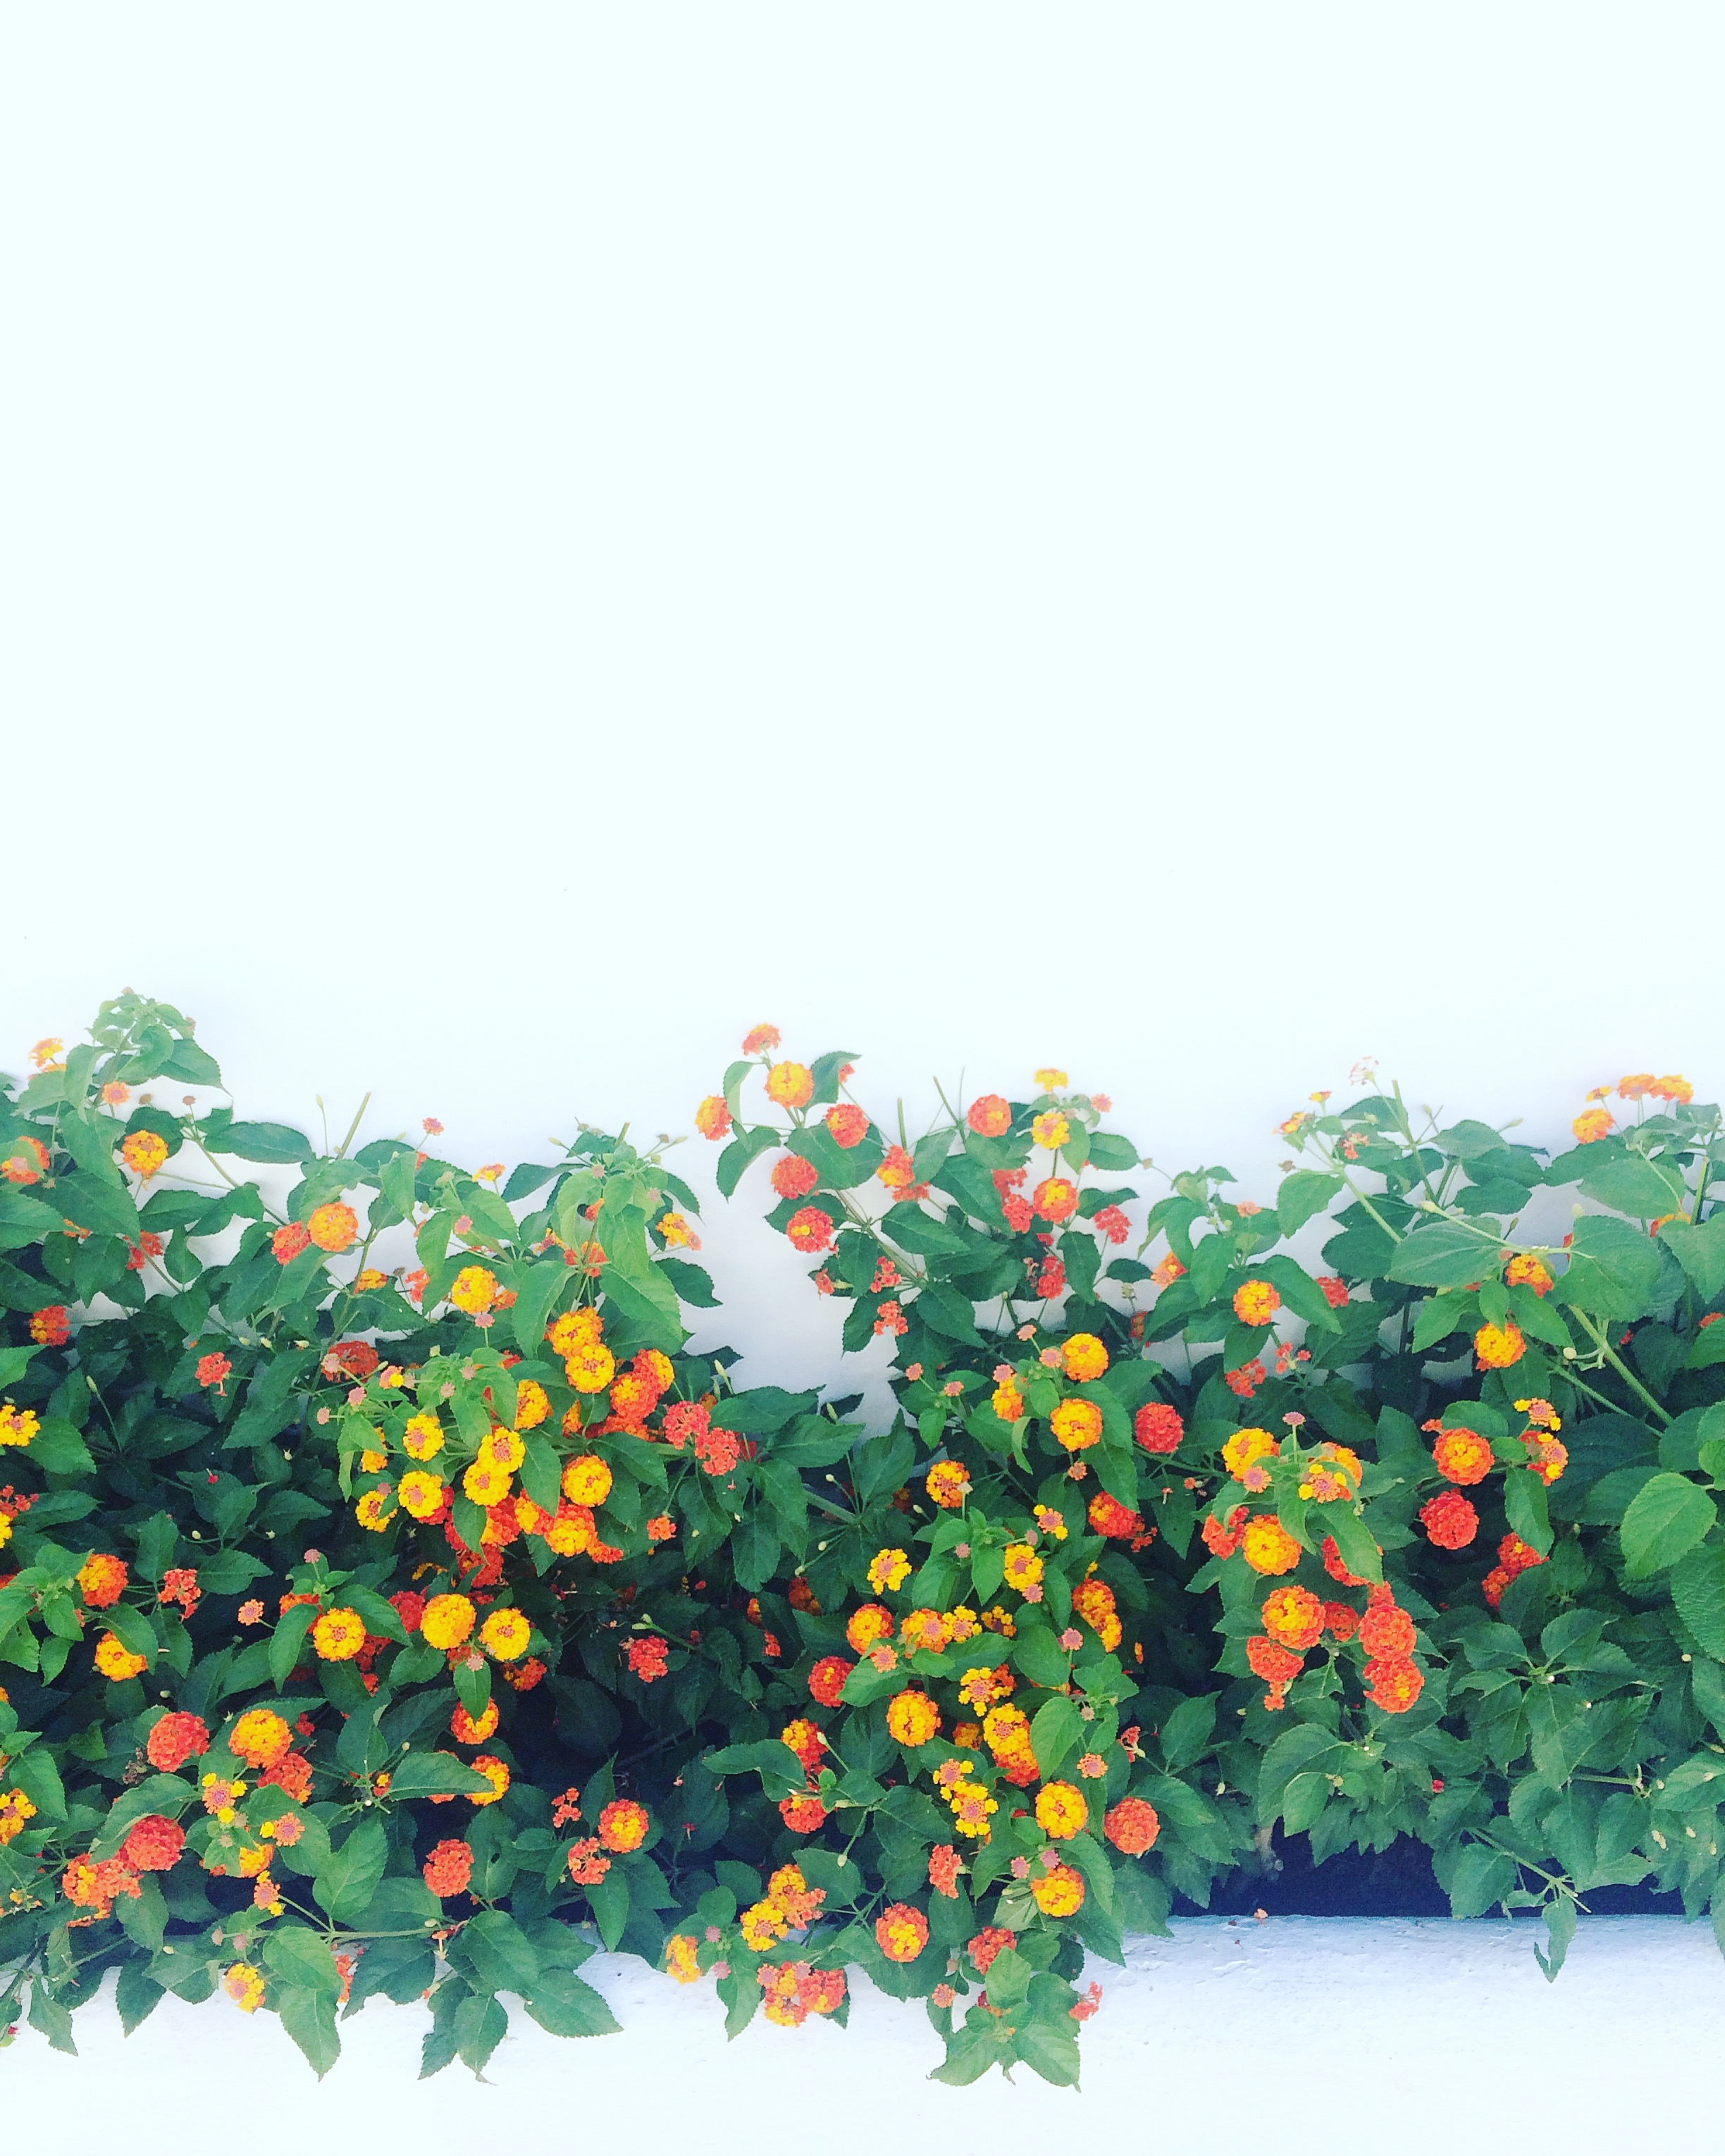 Neighbourhoods in Marbella are adorned with beautifully coloured flowers and plants